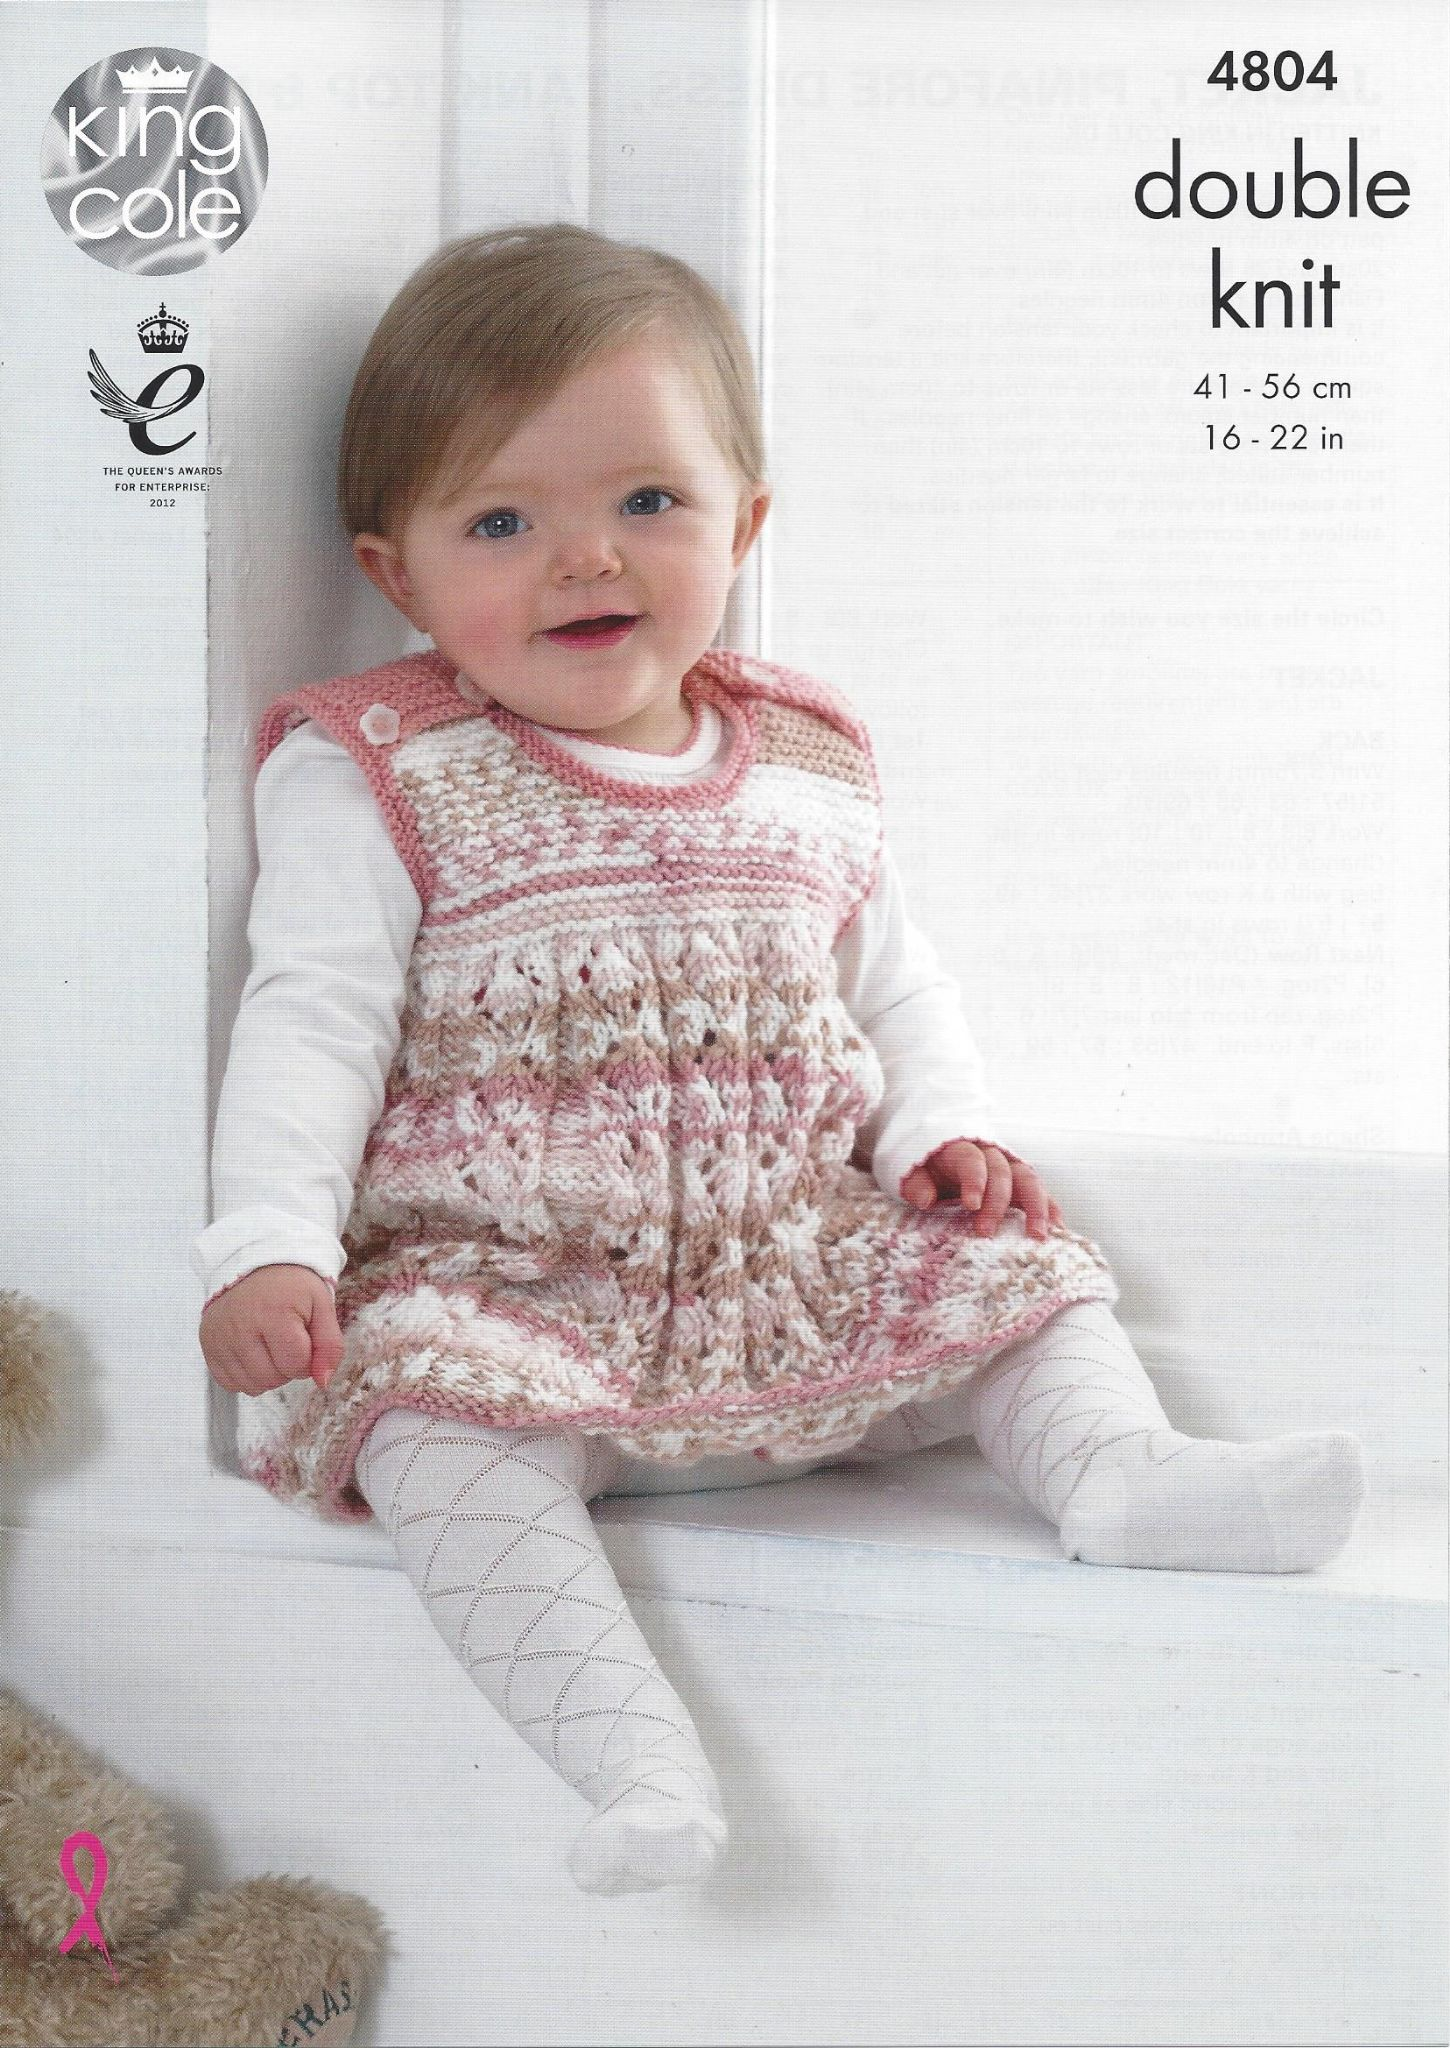 King cole baby drifter dk knitting pattern 4804 jacket pinafore king cole baby drifter dk knitting pattern 4804 jacket pinafore dress tank top hat bankloansurffo Image collections